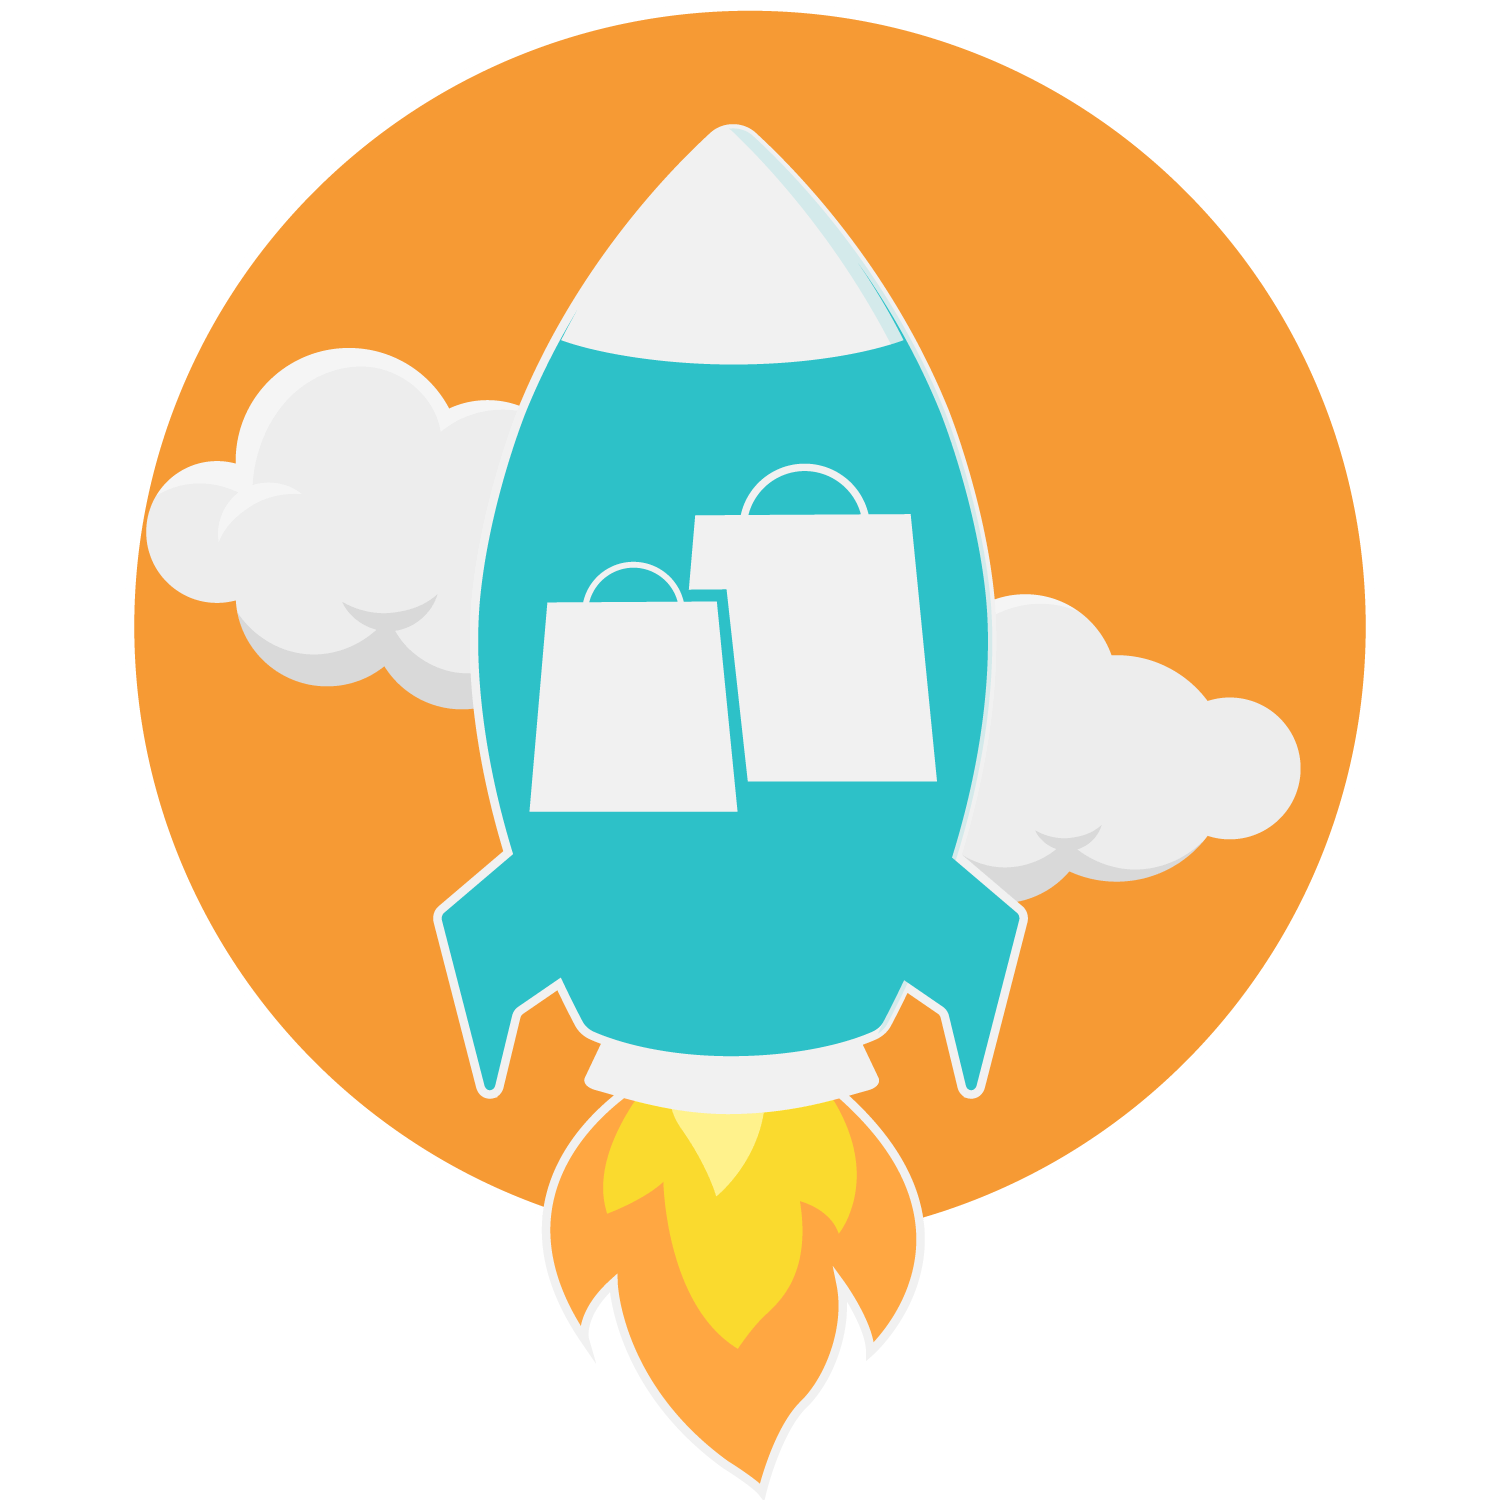 SALES-BOOSTER-ICON-PROMOTIONS FOR AMAZON PRODUCTS WITH AMAZON COUPONS - SHOPPING BAGS IN A ROCKET